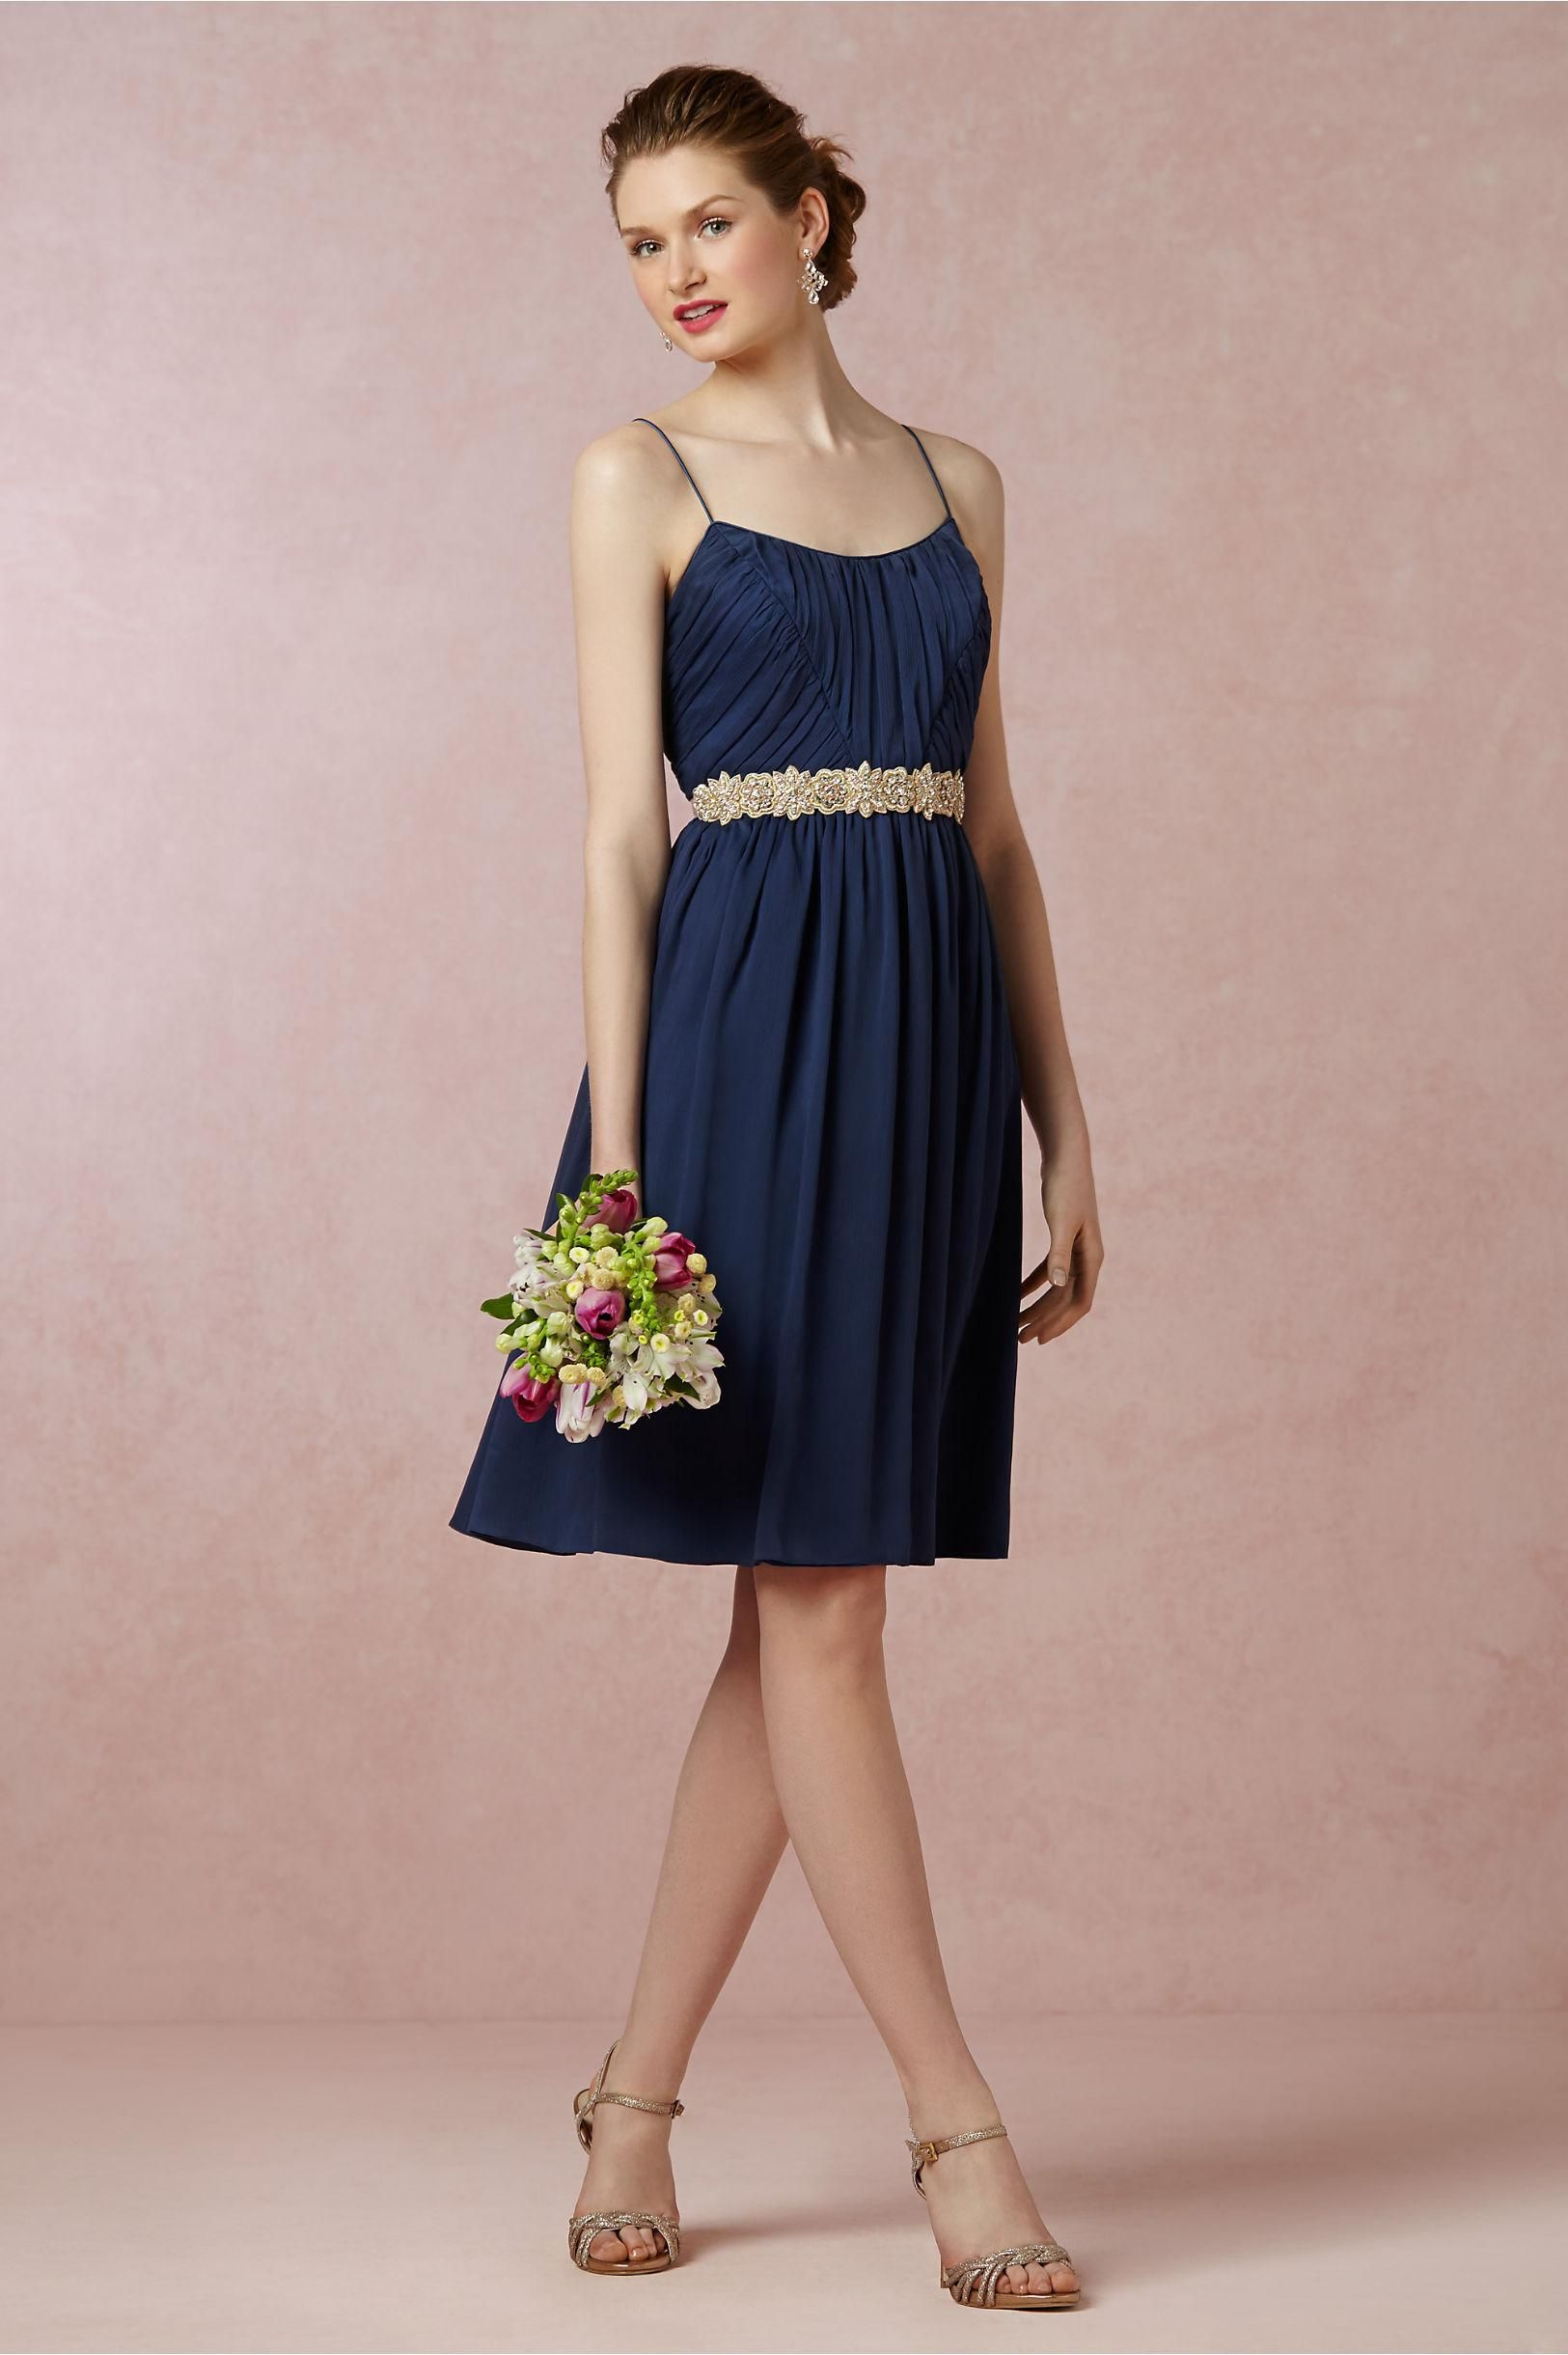 Giselle Bridesmaids Dress in Navy from BHLDN | Wedding colors ...